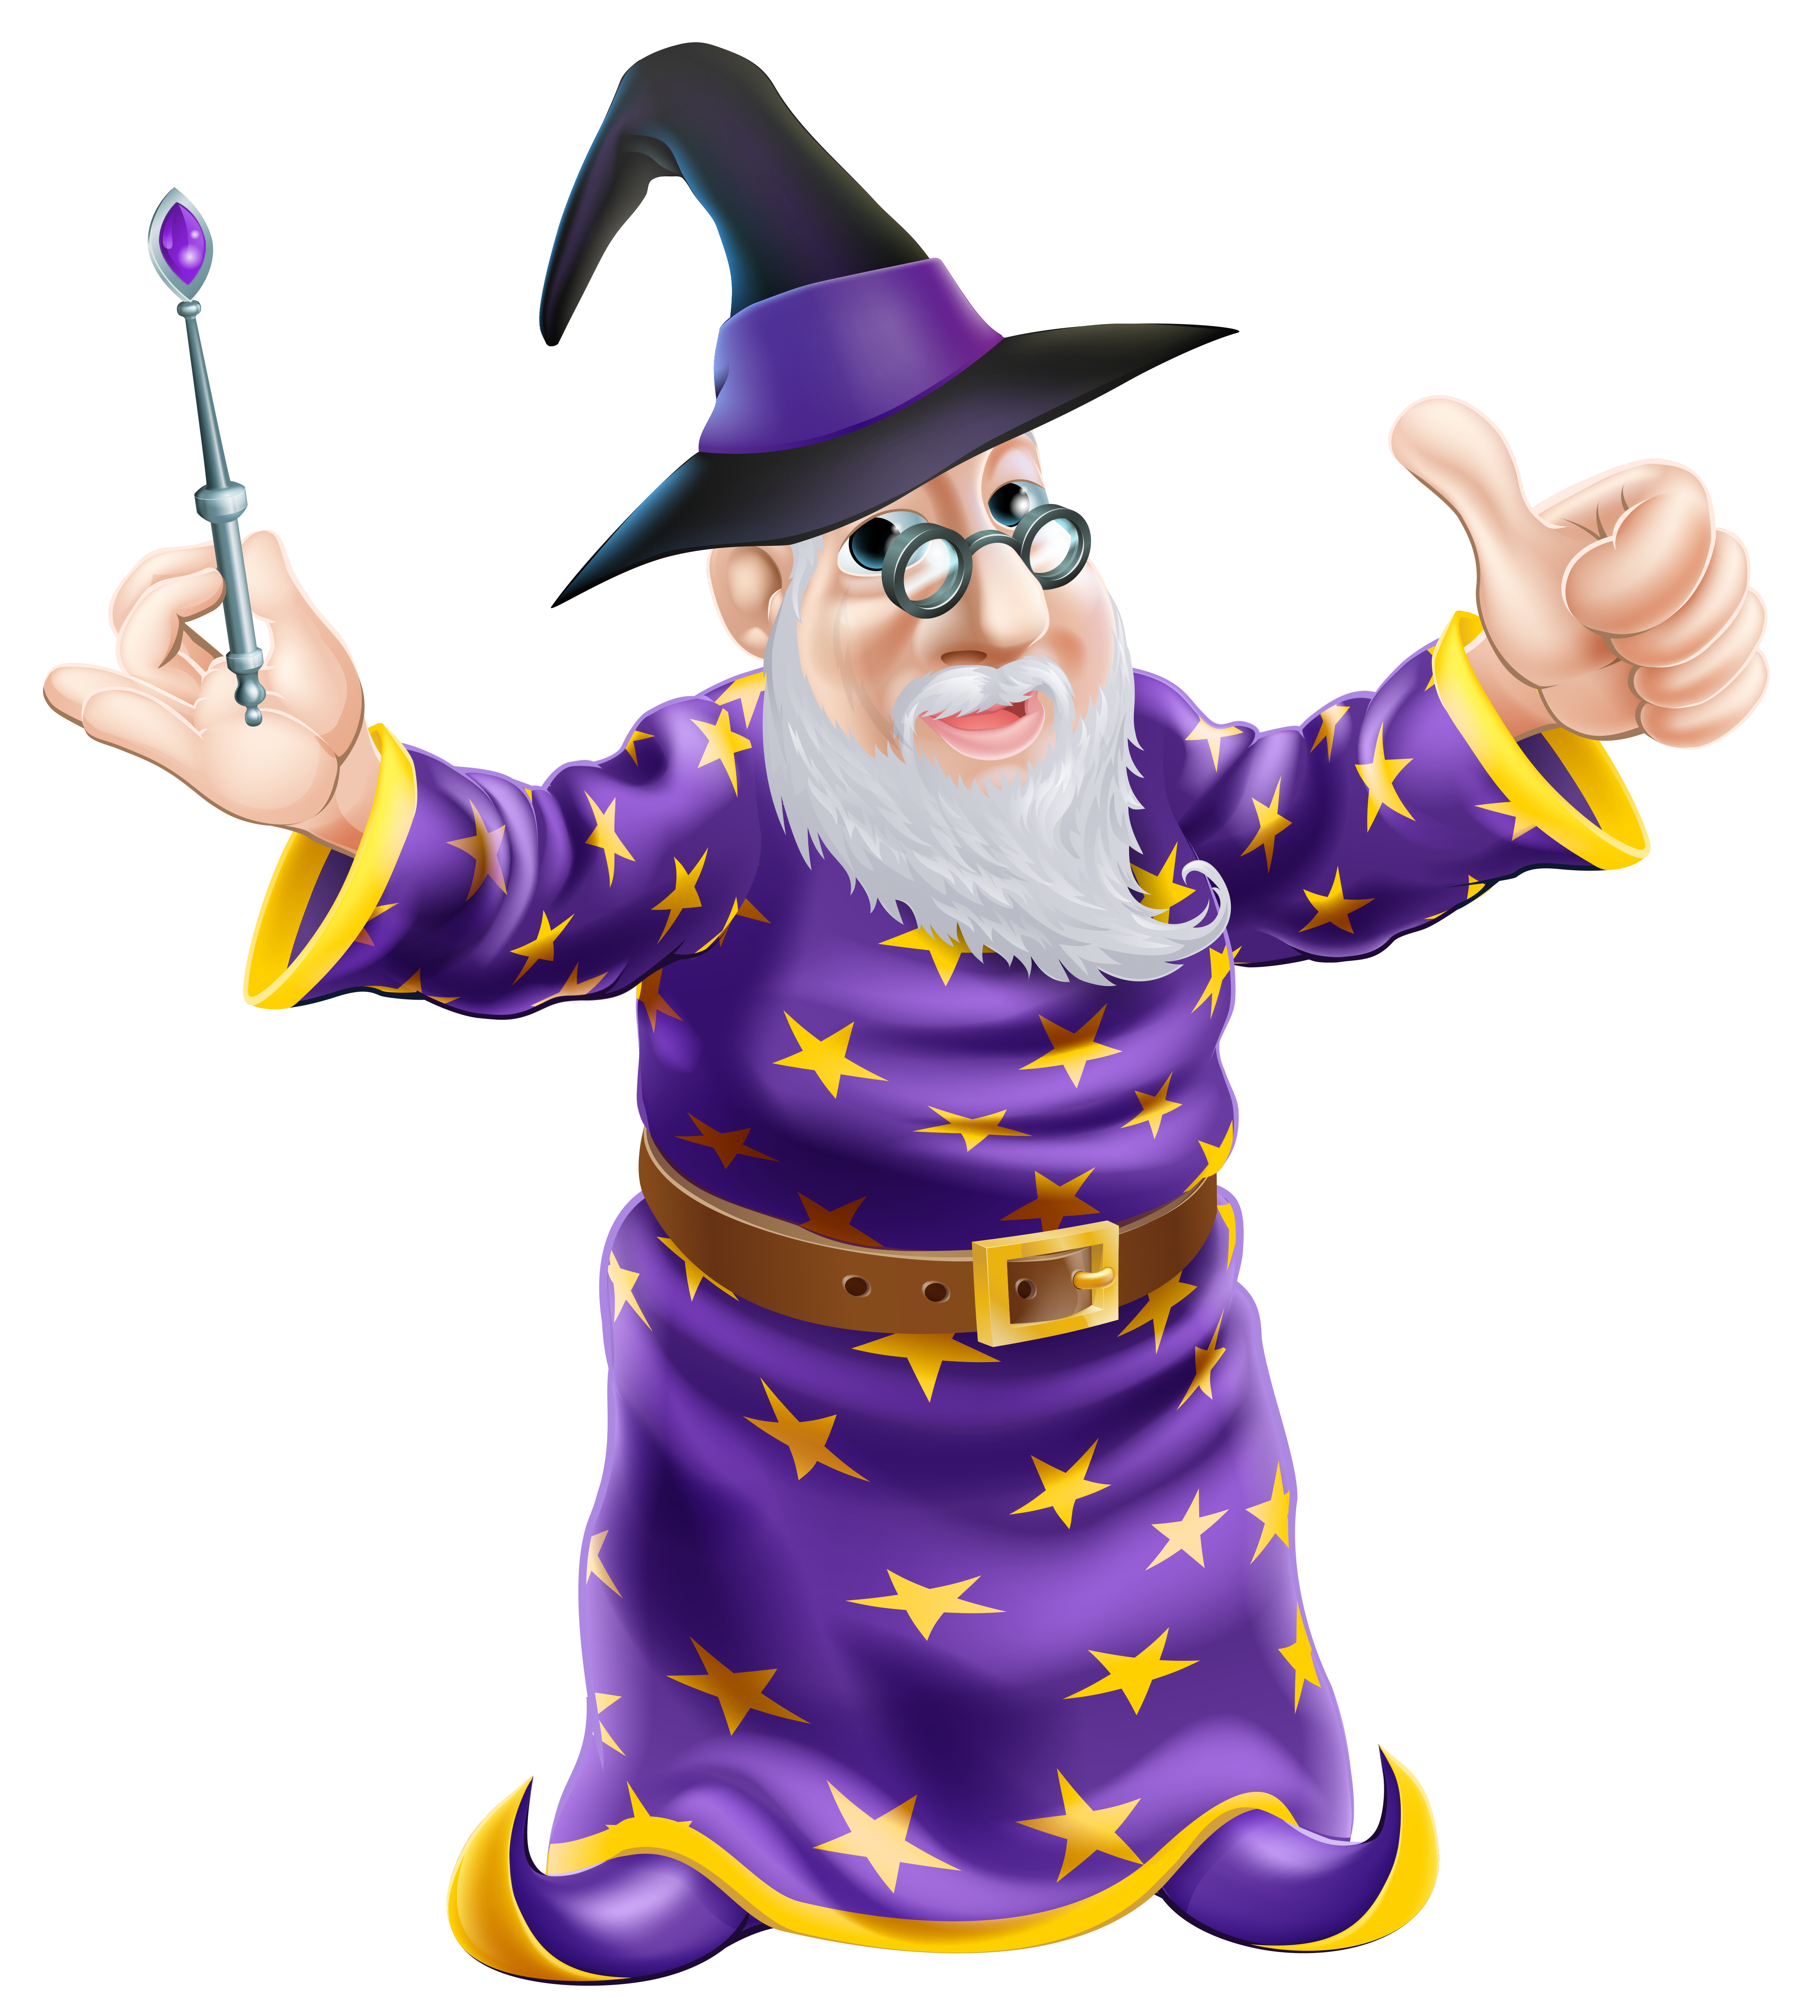 Purple clipart wizard. Cartoon png image gallery